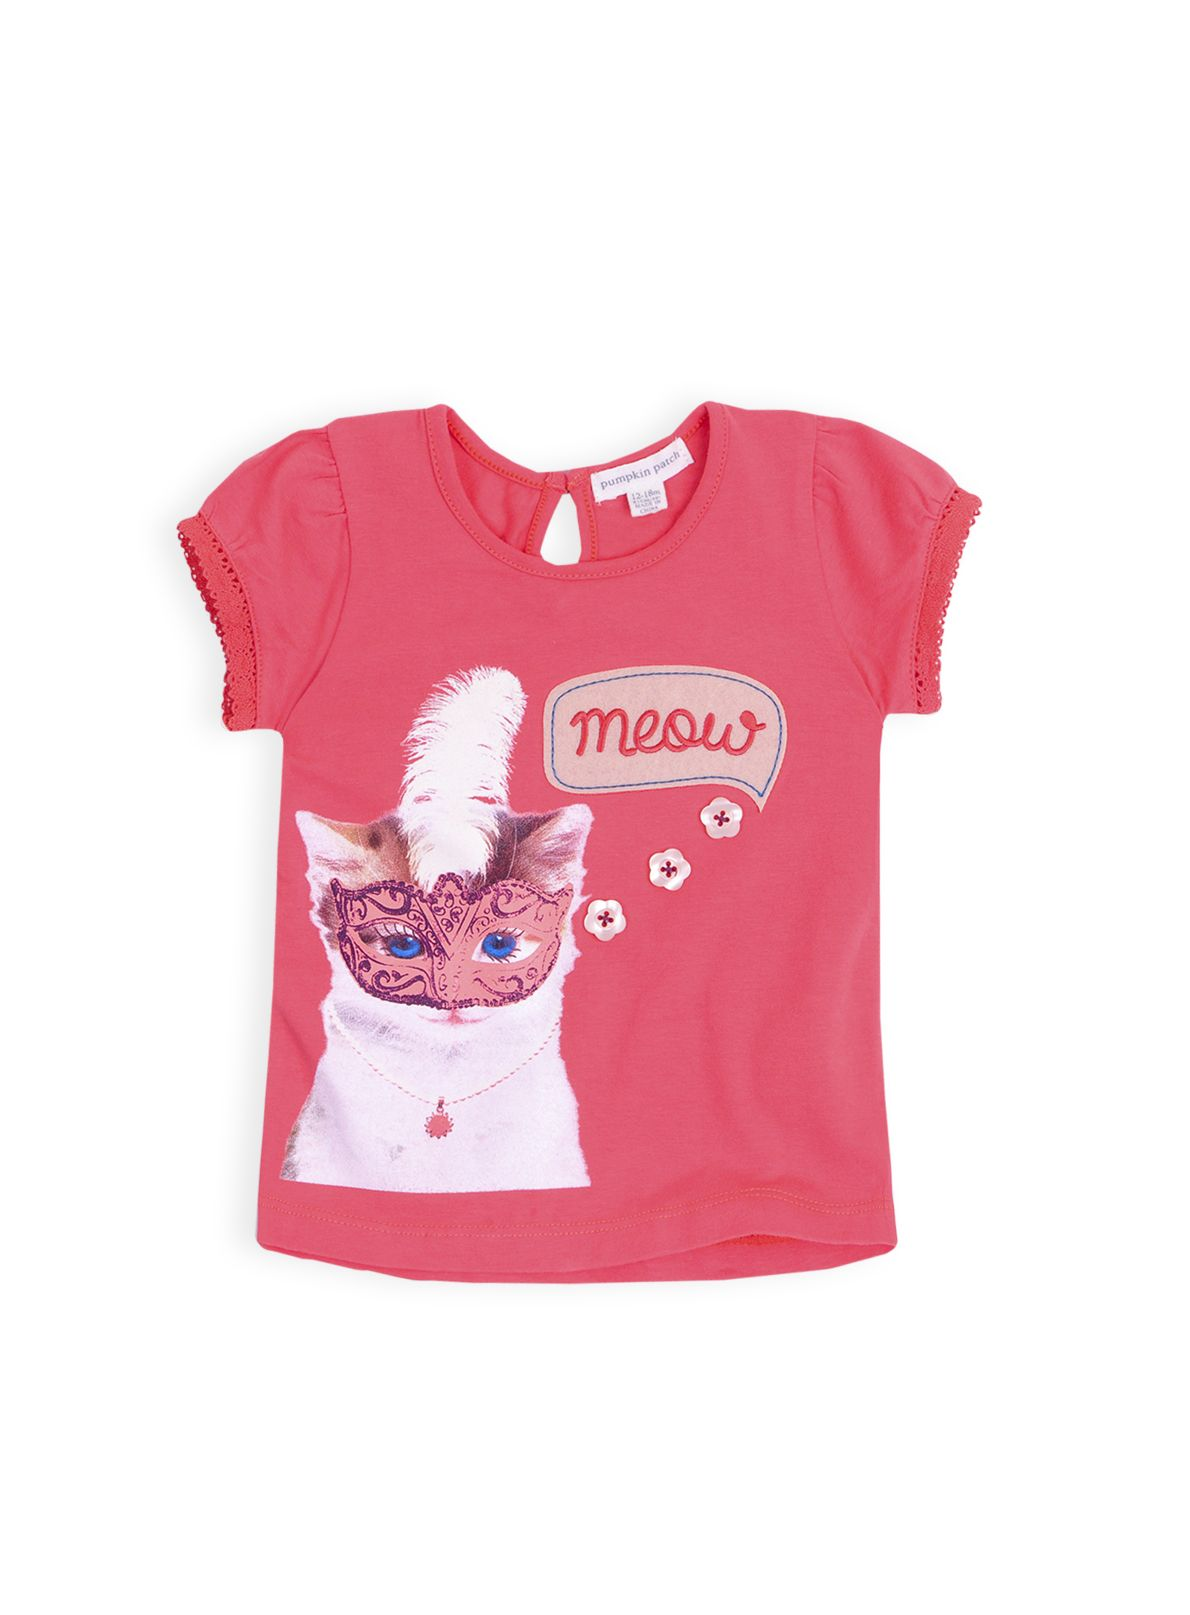 Girls cat top